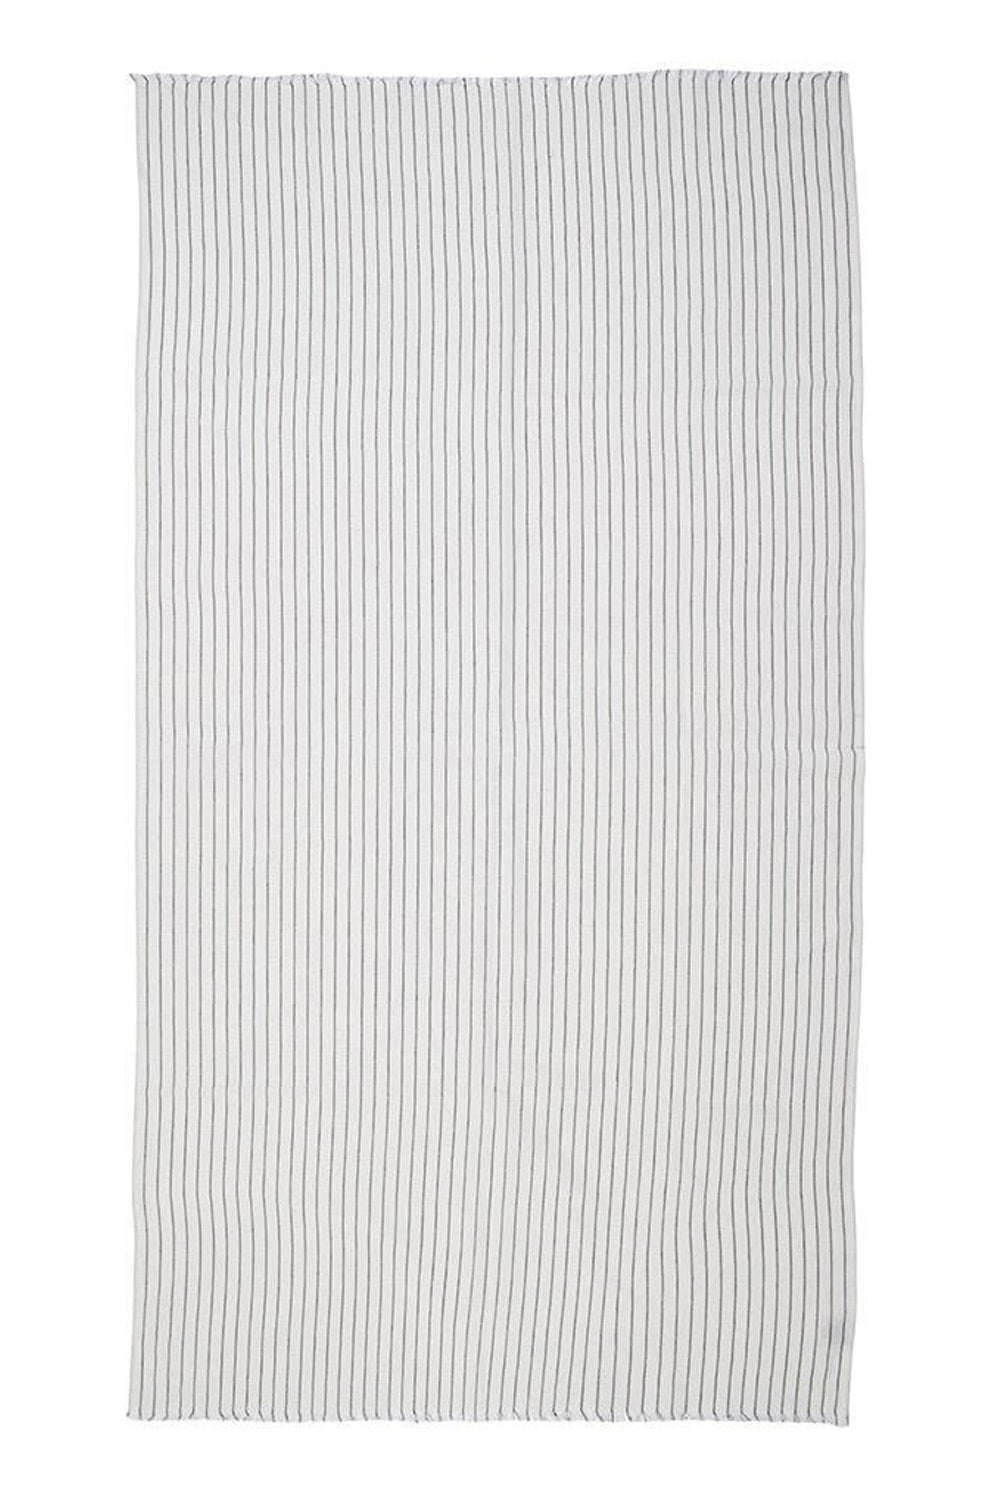 Mayde Balmain Towel - White / Black